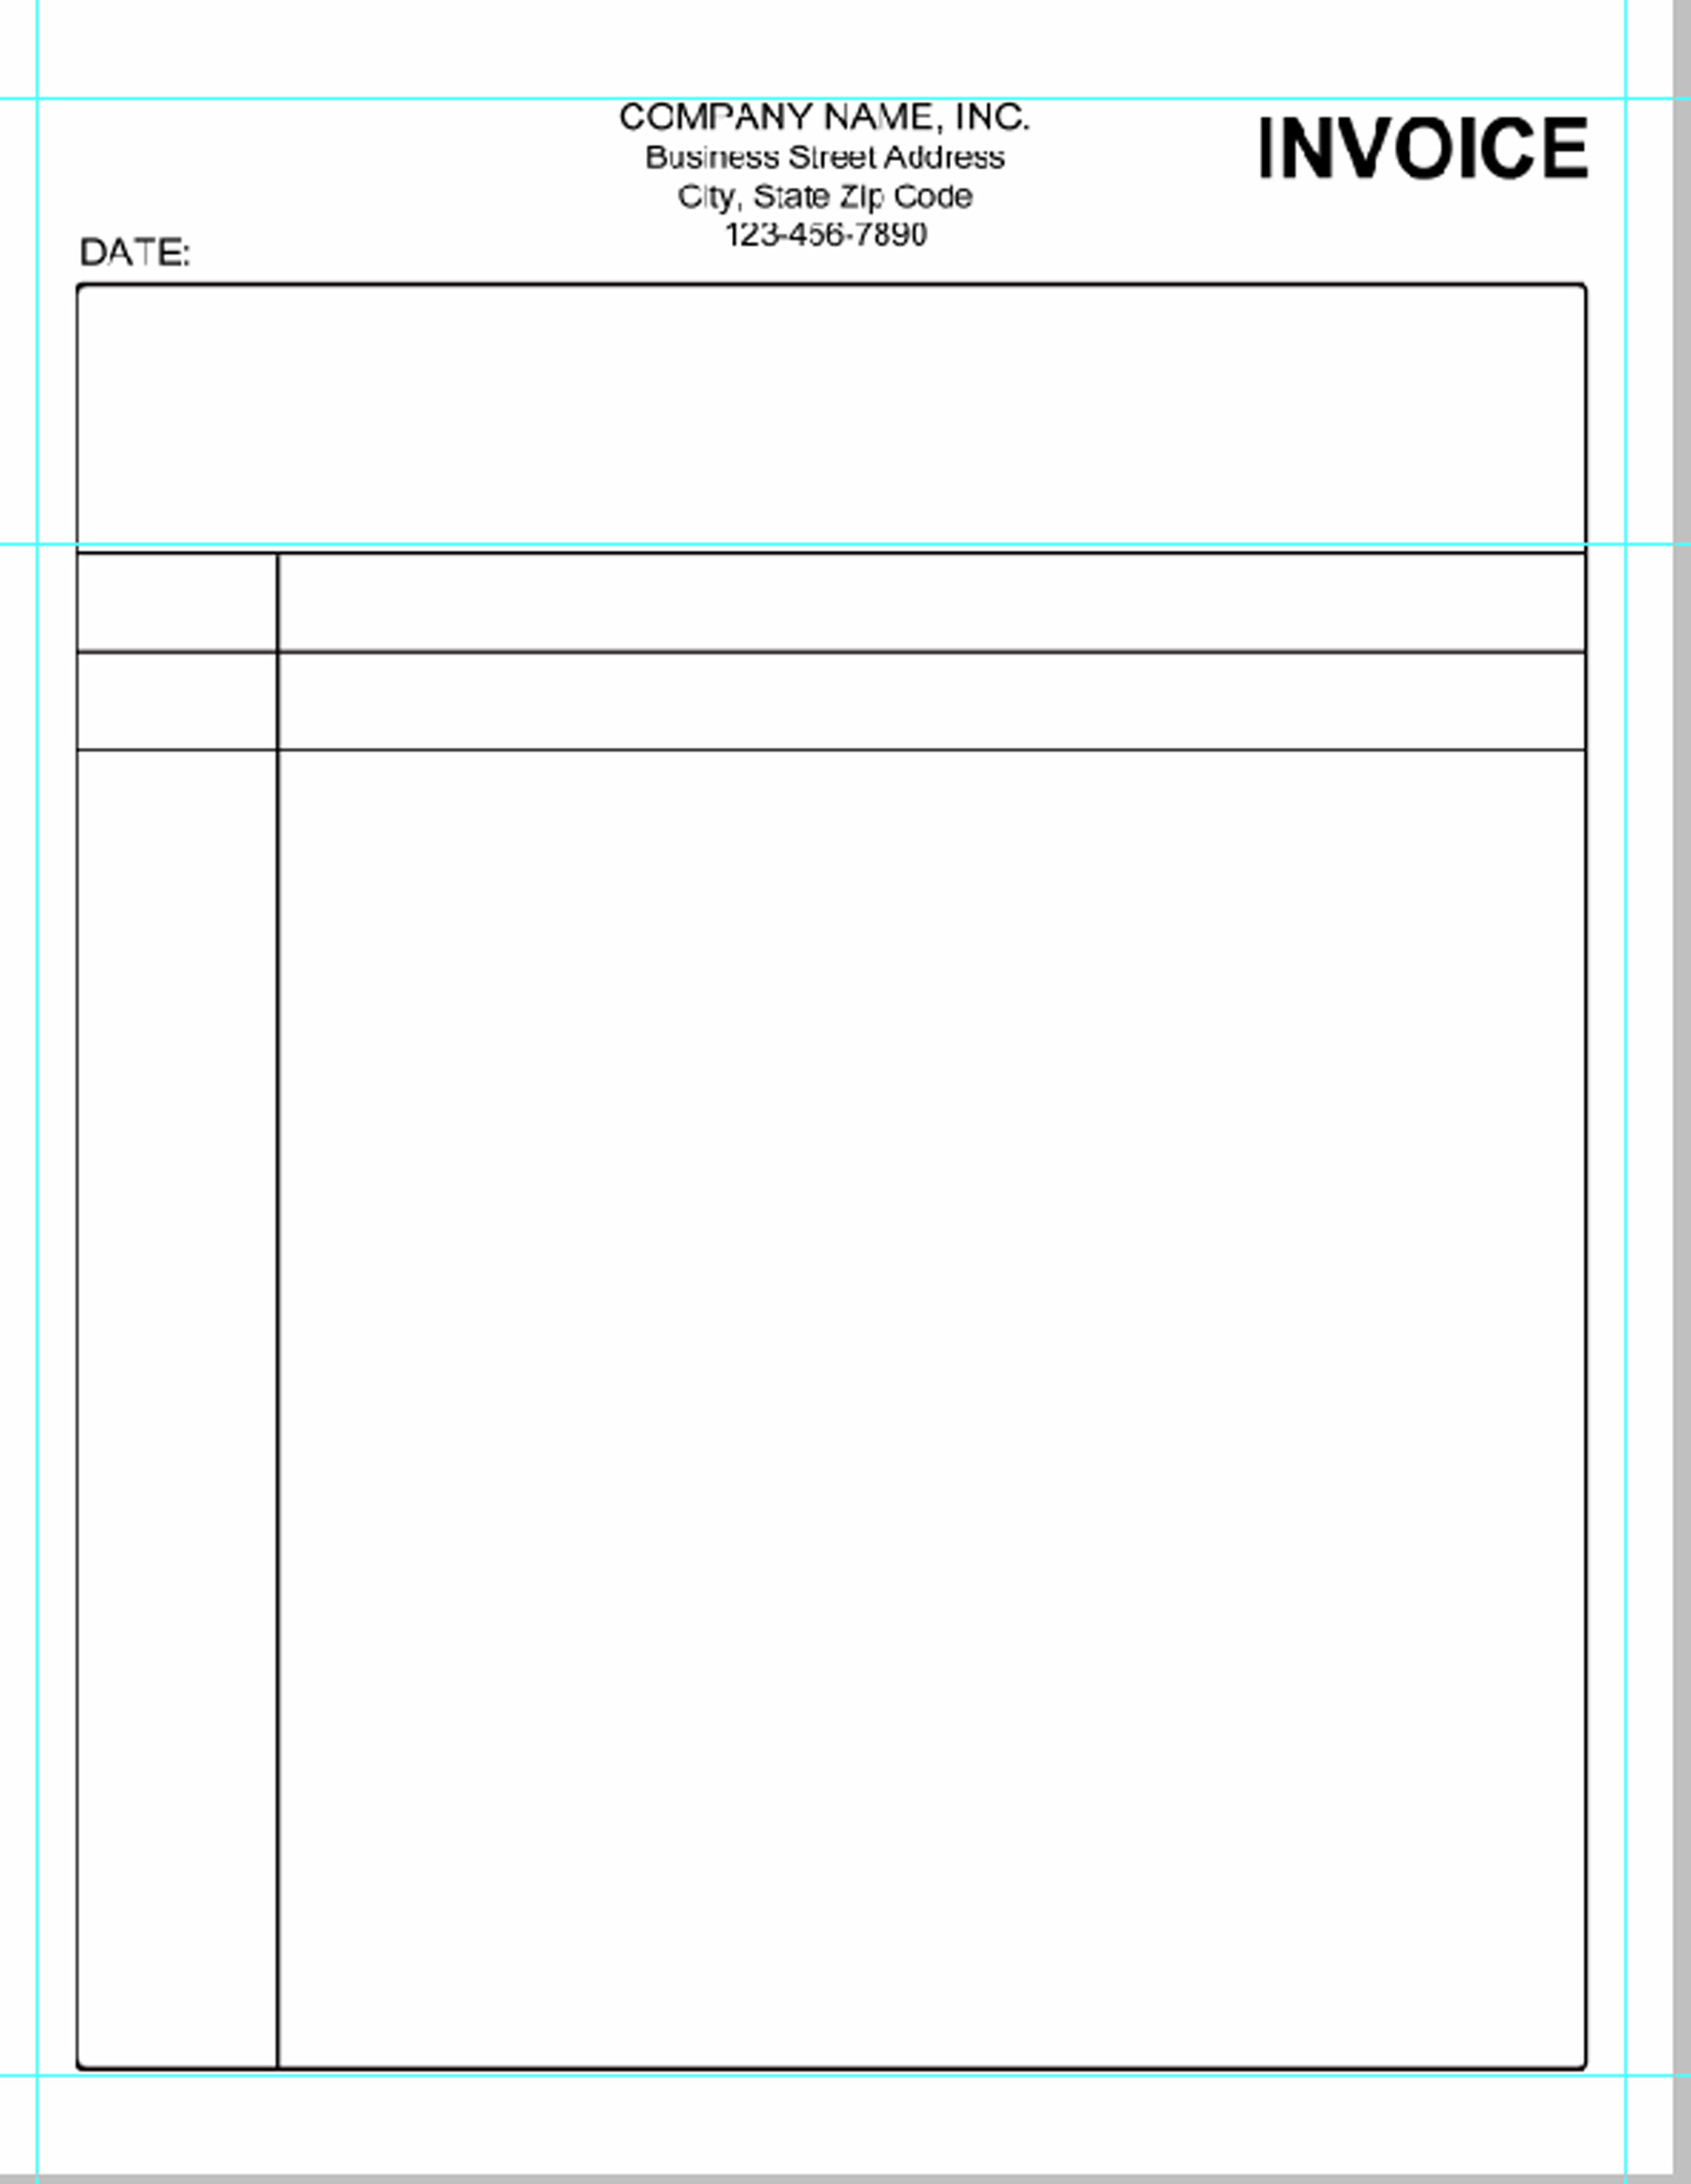 Blank Invoice Doc | printable invoice template